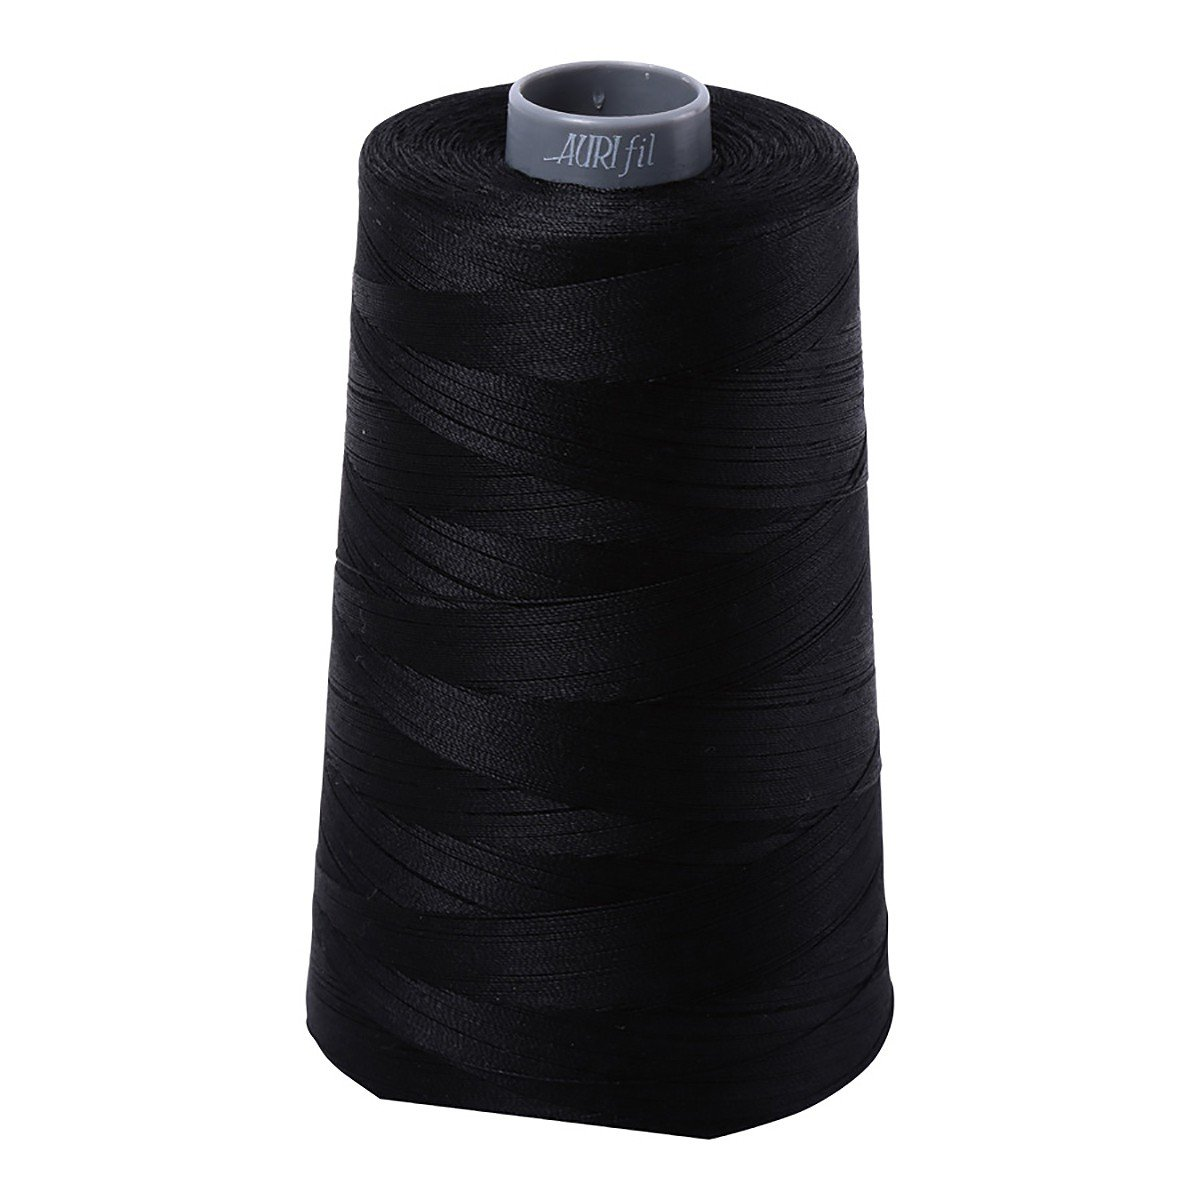 Mako (Cotton) Embroidery Thread 28wt 3609yds Black